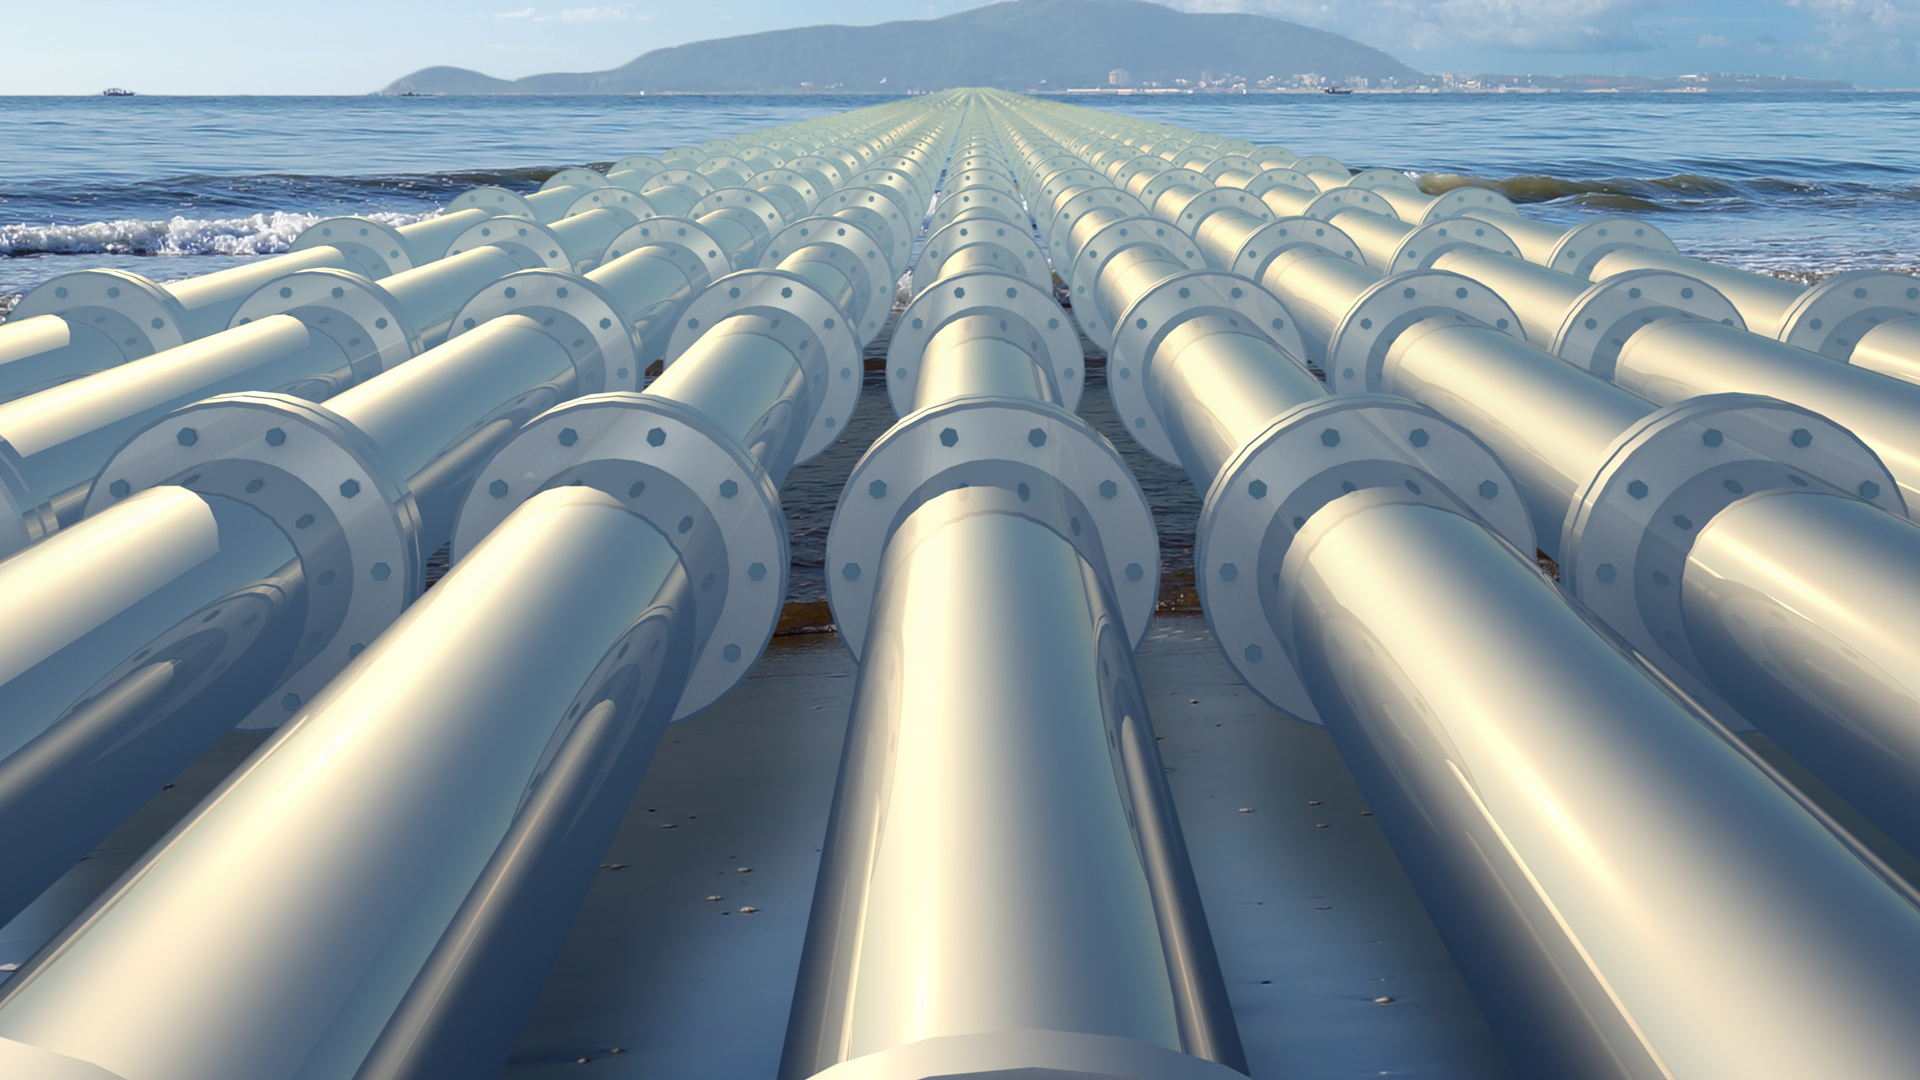 Pelatihan Piping and Pipeline Design and Integrity Management